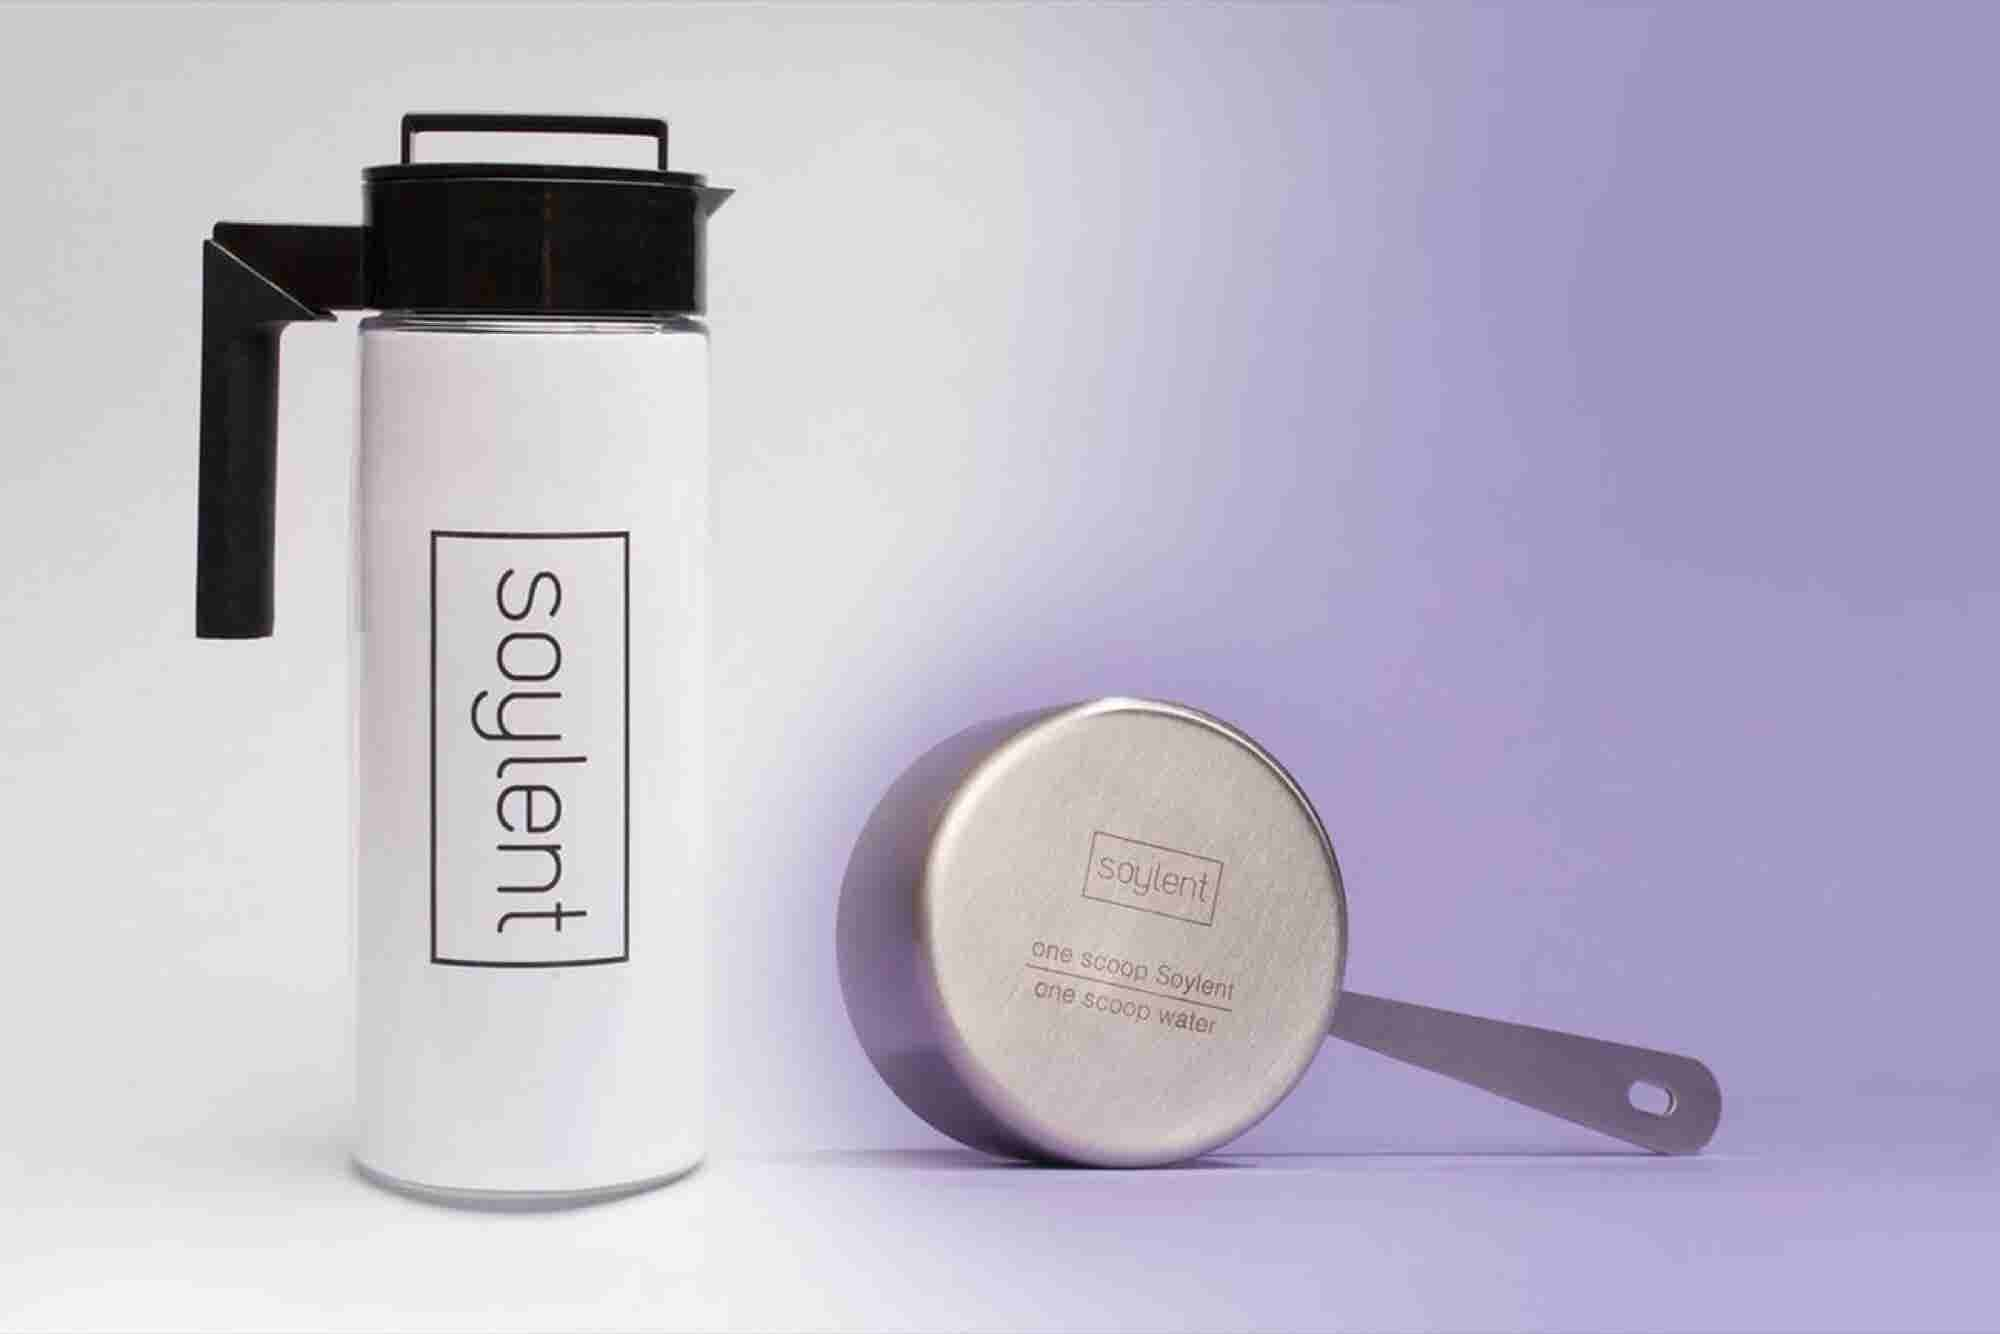 Soylent Refutes Claims That It Contains Dangerous Levels of Lead and Cadmium